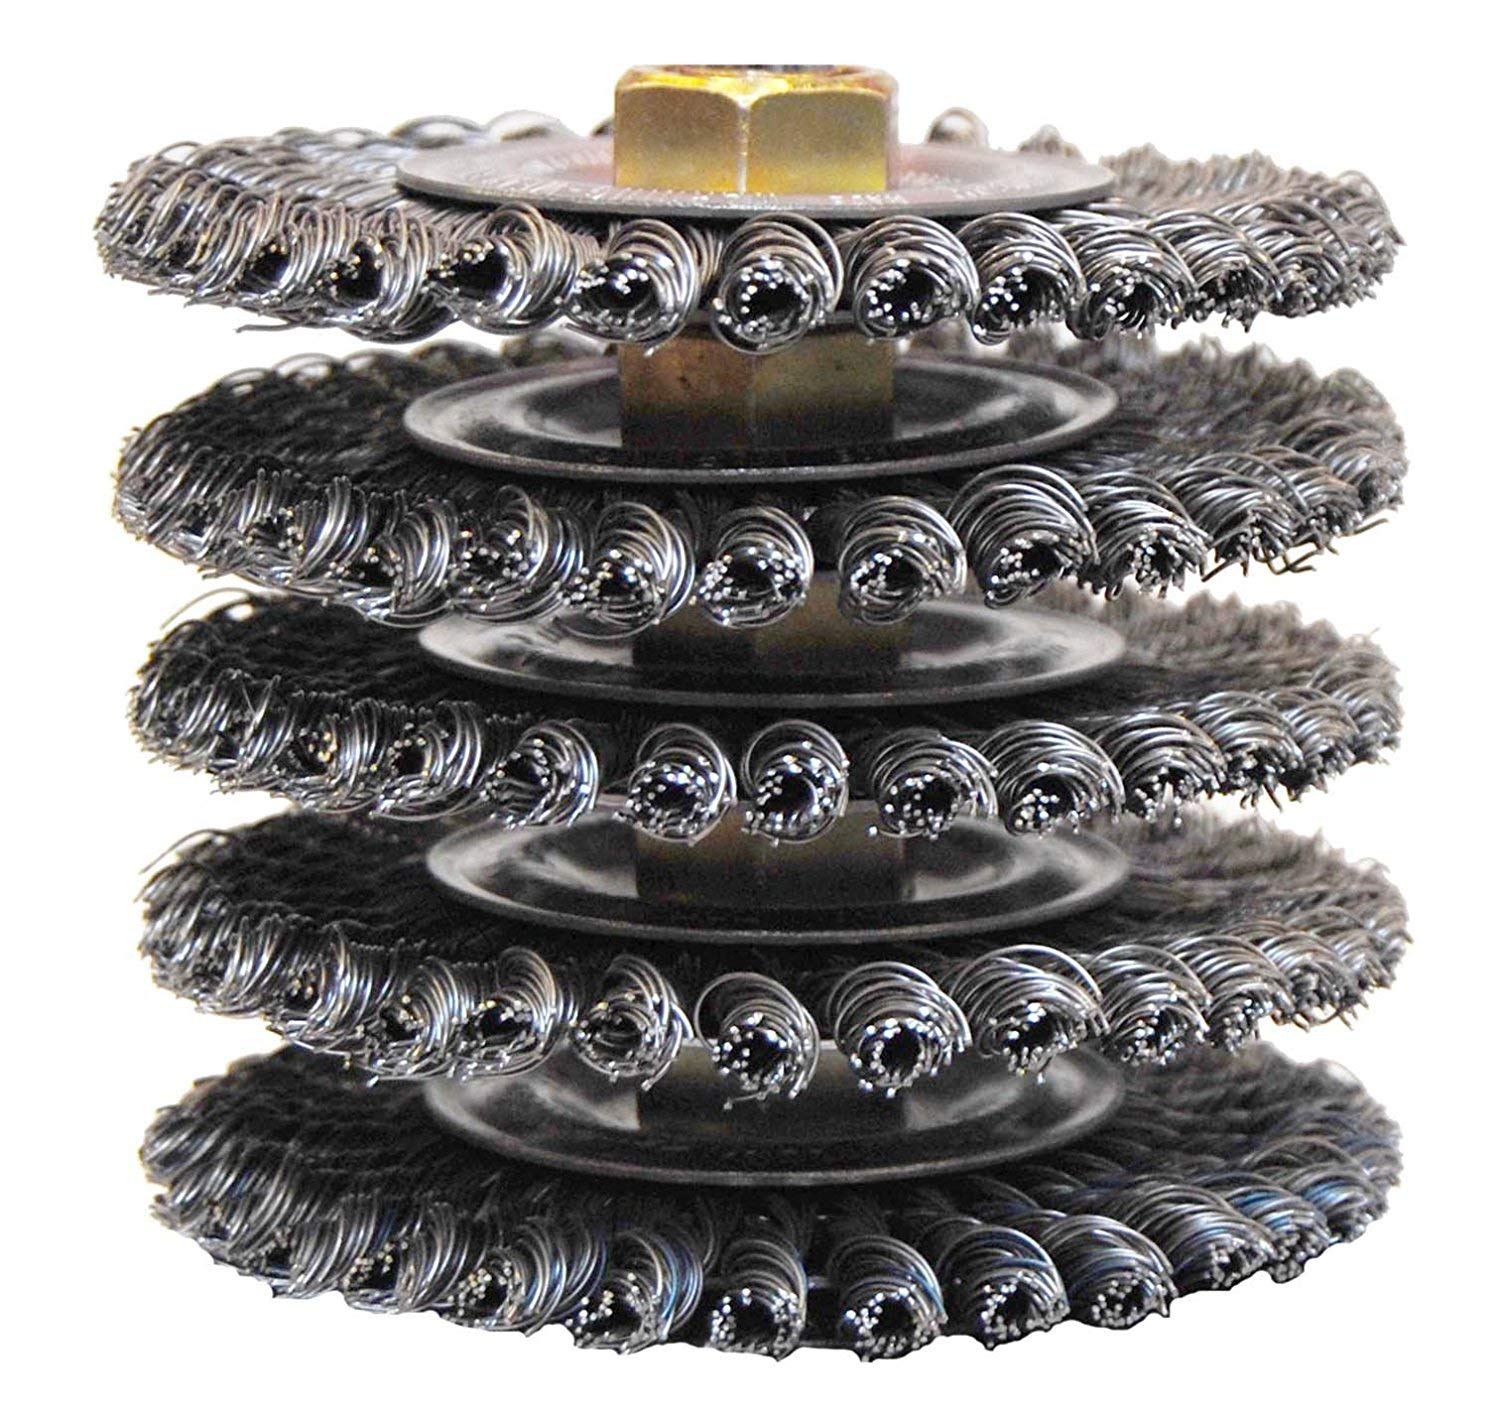 Weiler 13131 ROUGHNECK MAX 4'' Stringer Bead Wire Wheel, .020'' Steel Fill, 5/8''-11 UNC Nut, Made in USA, Pack of 5 by Weiler (Image #2)